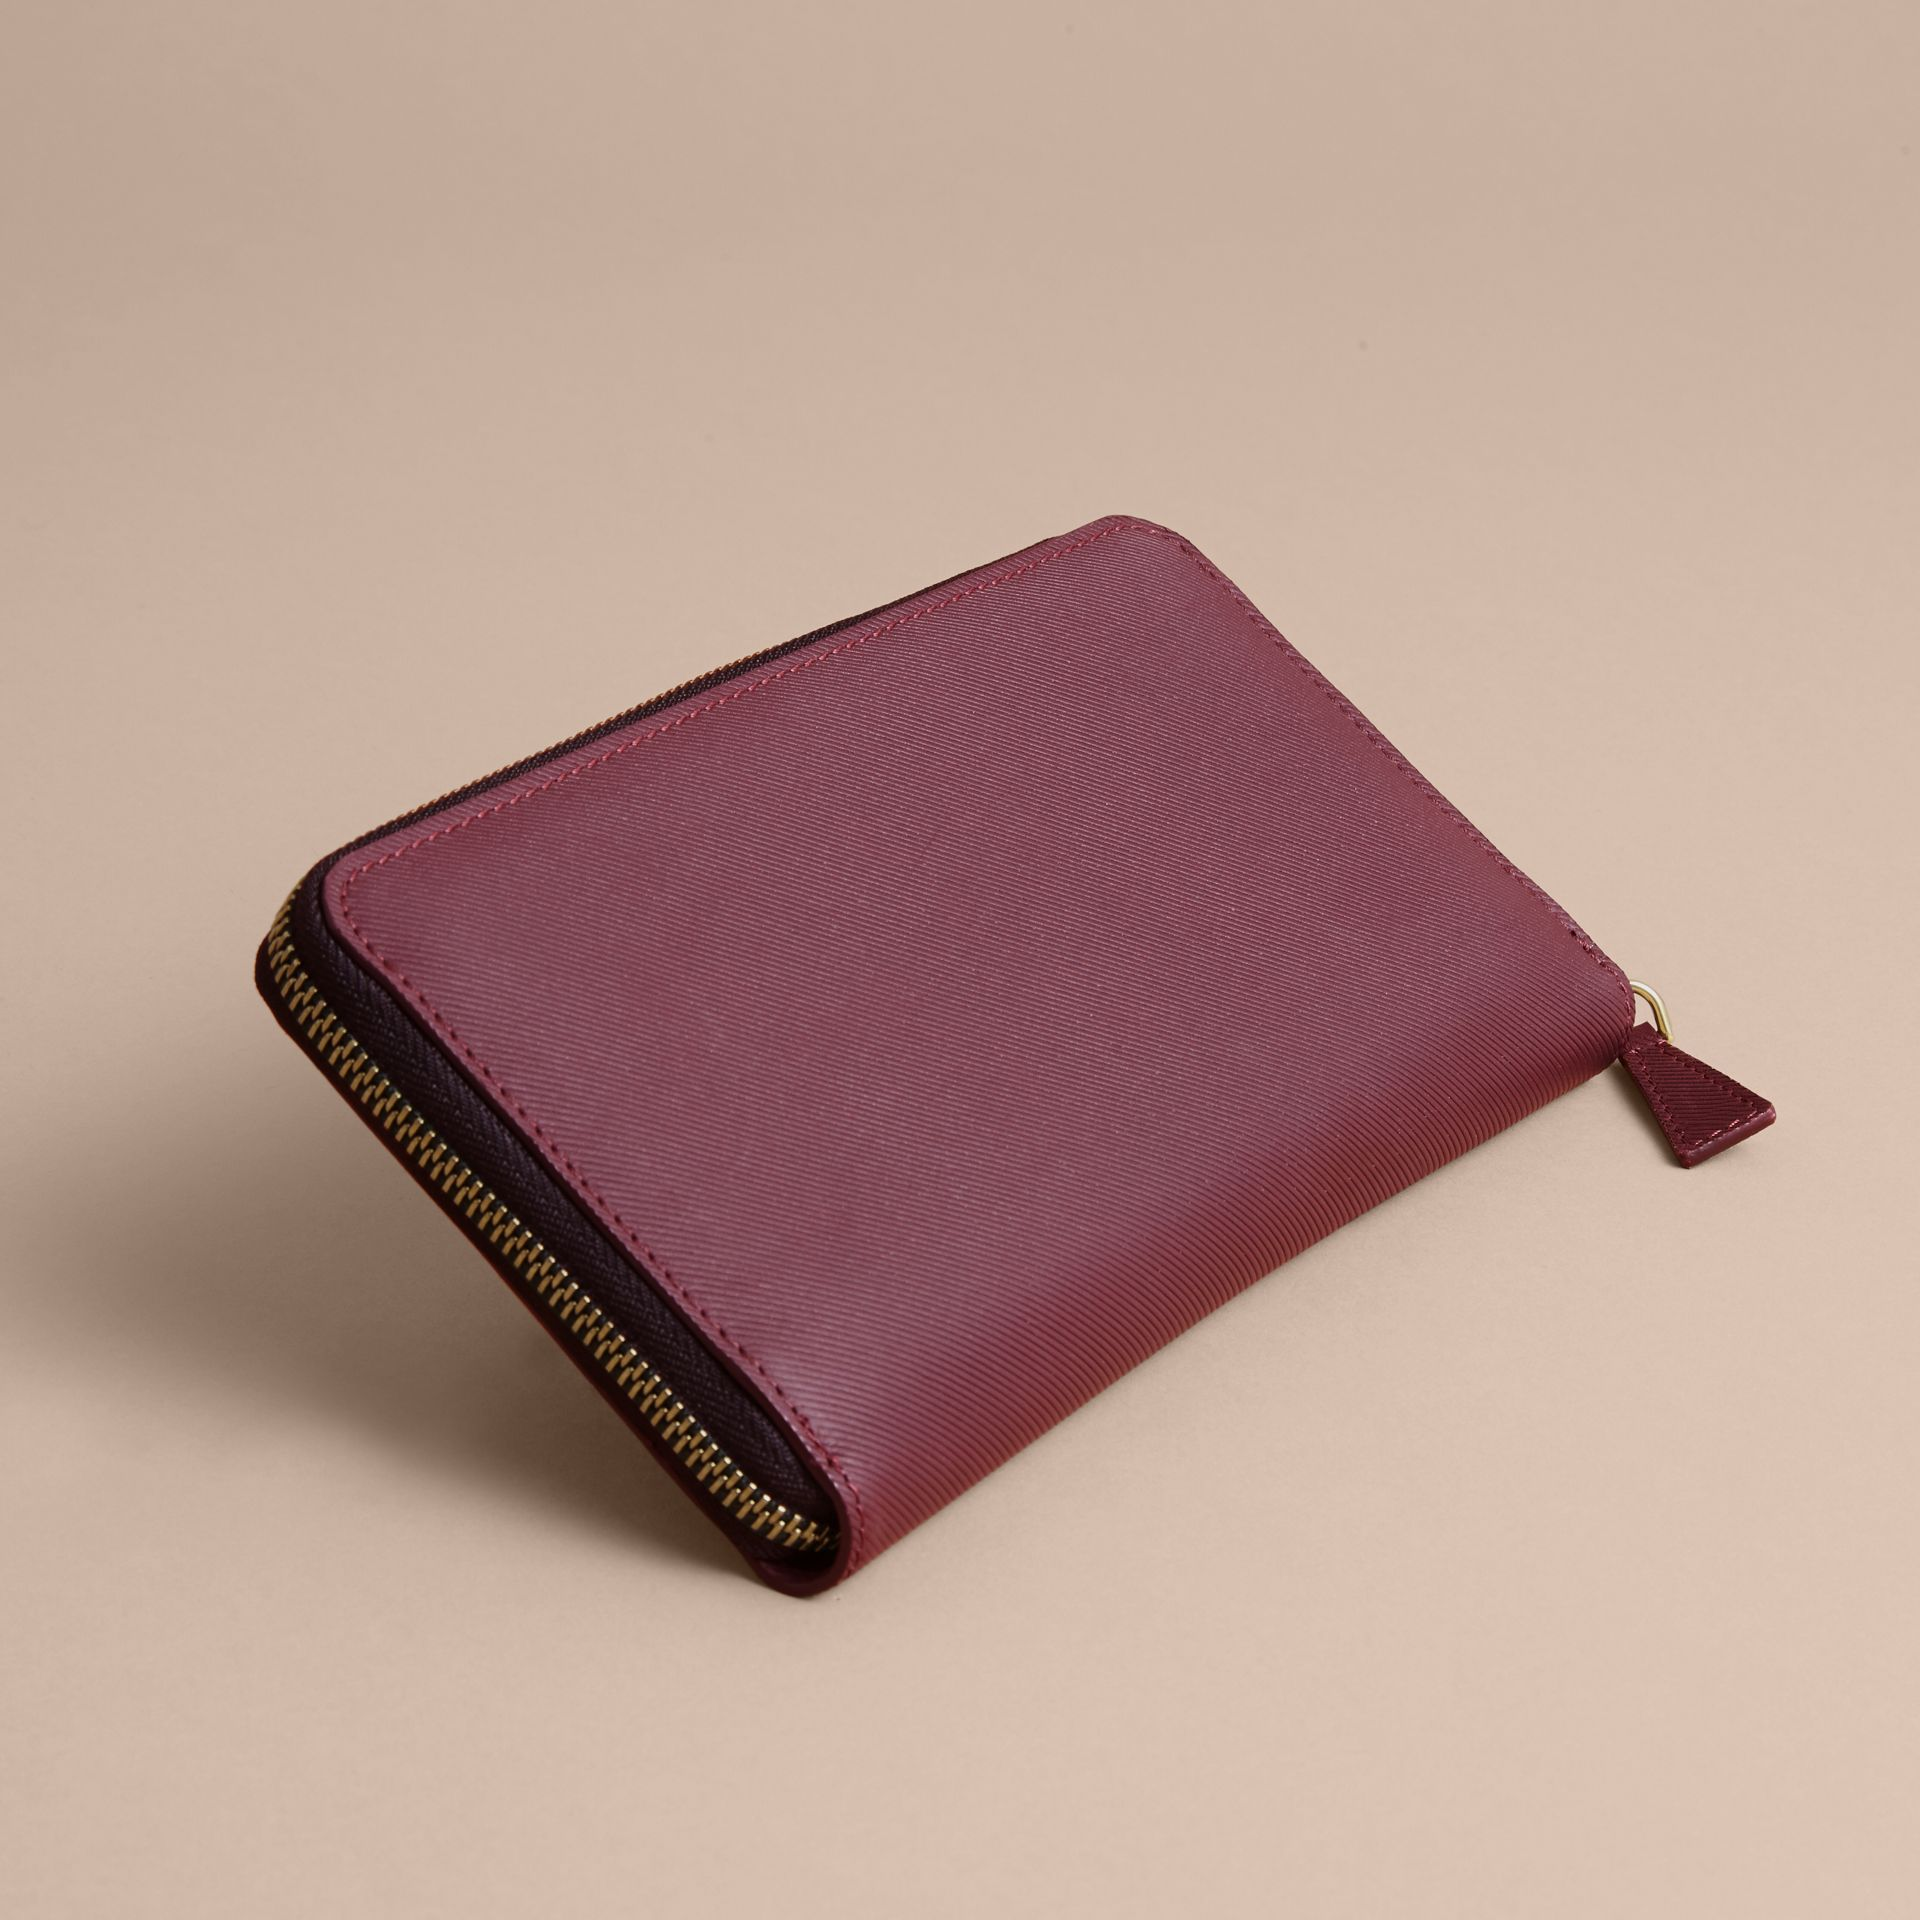 Trench Leather Ziparound Wallet in Wine - Men | Burberry Australia - gallery image 4